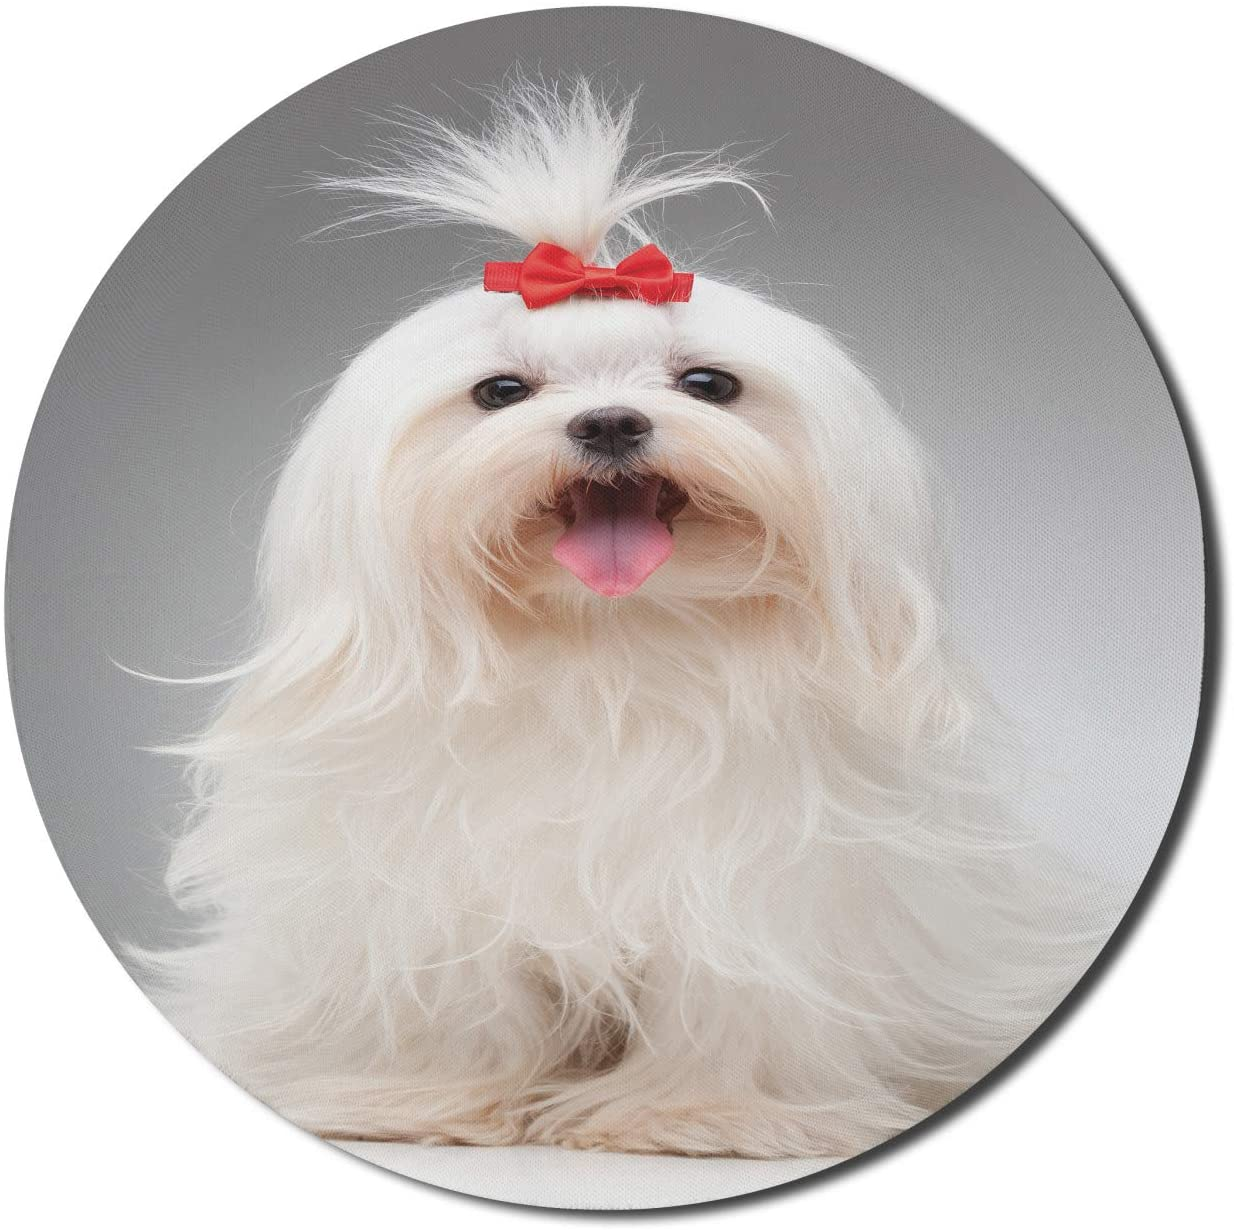 Lunarable Bow Mouse Pad for Computers, Posing Playful White Maltese Dog Breed with Tiny Red Hairpin Holding Updo Hair Image, Round Non-Slip Thick Rubber Modern Gaming Mousepad, 8